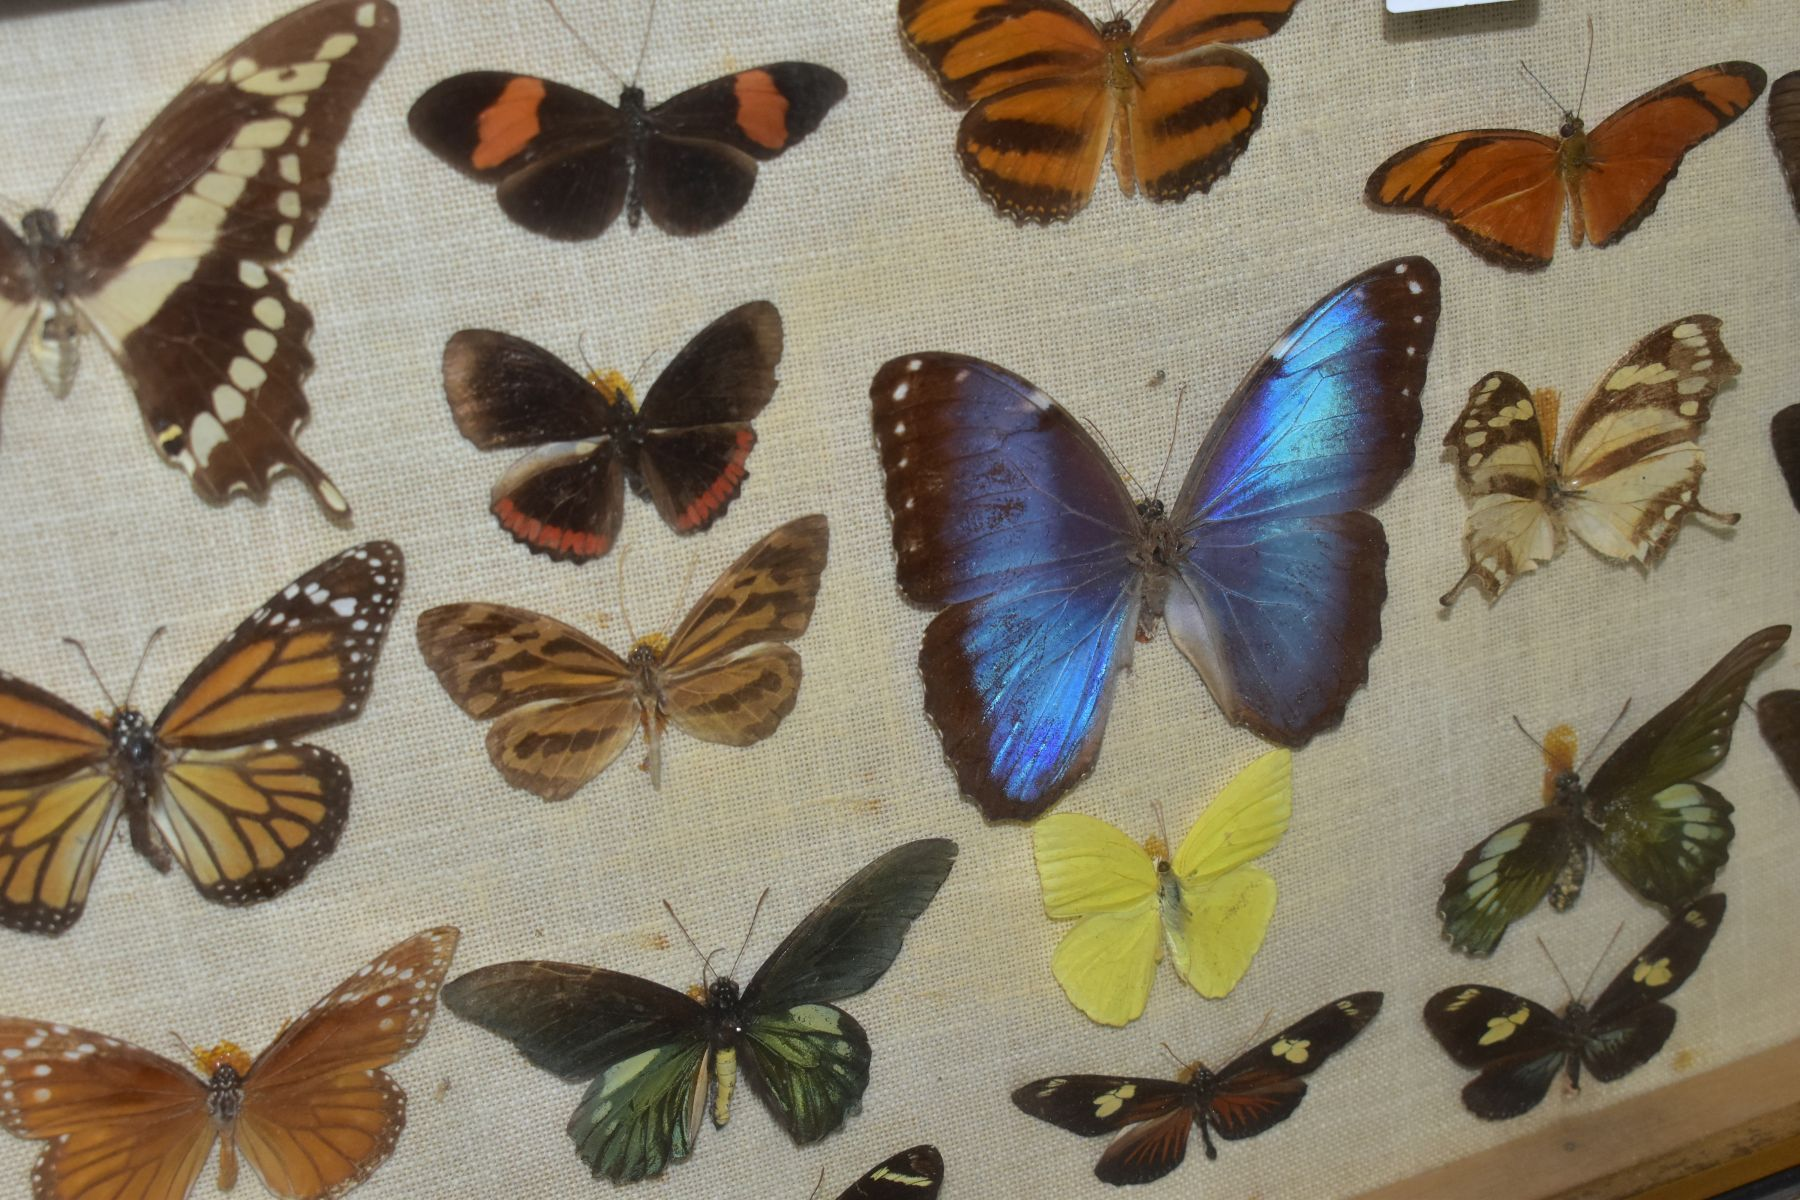 THREE DISPLAY CASES CONTAINING BUTTERFLIES AND MOTH SPECIMENS, together with four circular framed - Image 6 of 10